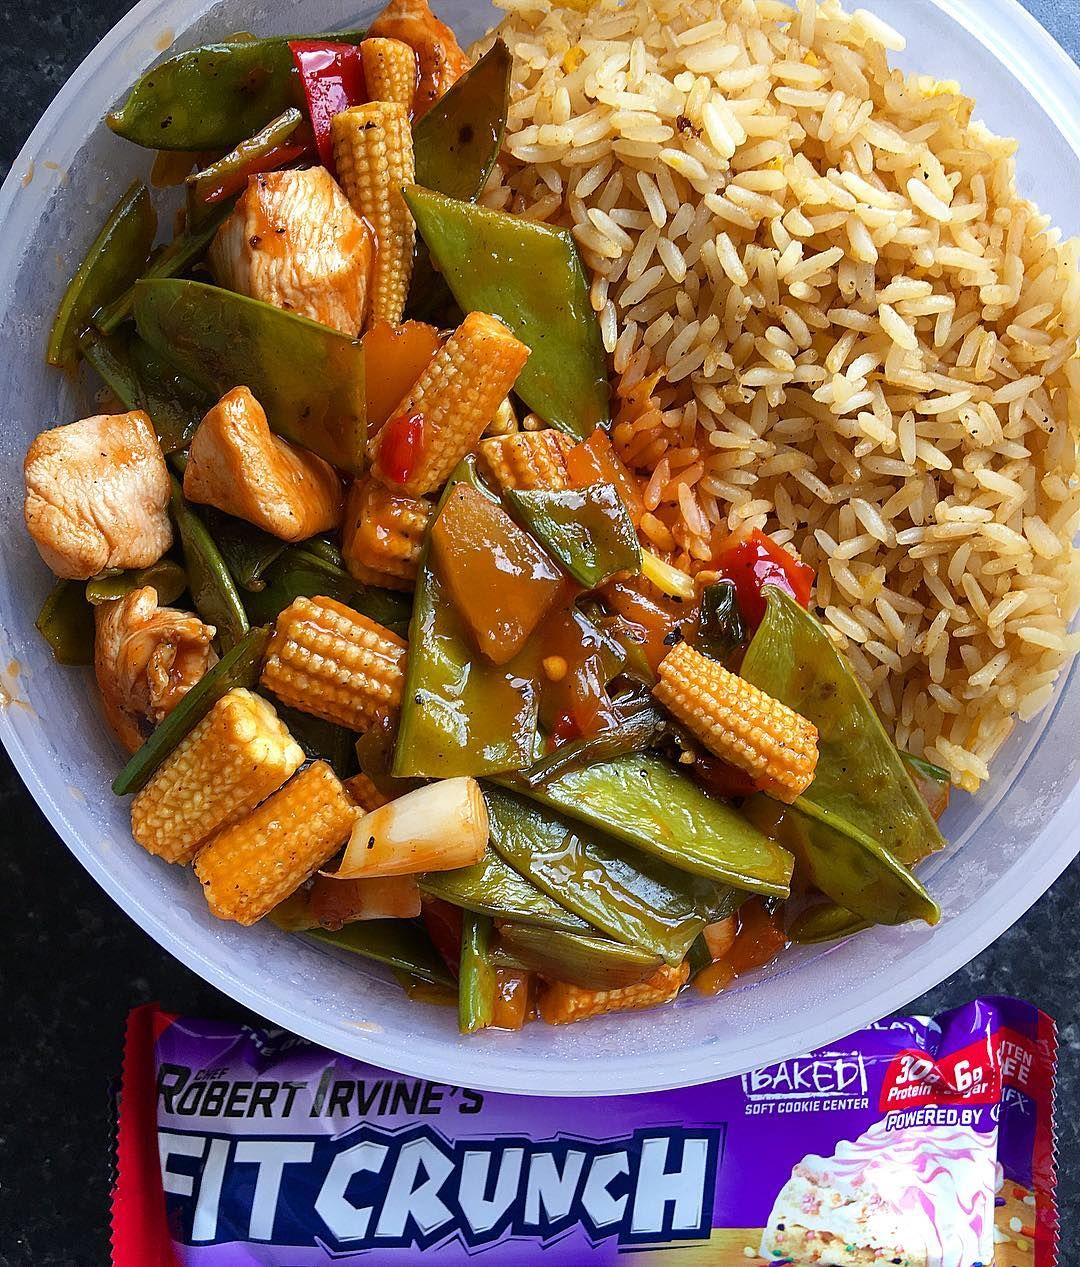 Massive Sticky Sweet And Sour Chicken With Egg Fried Rice A Fit Crunch Birthday Cake Bar Recipe For My